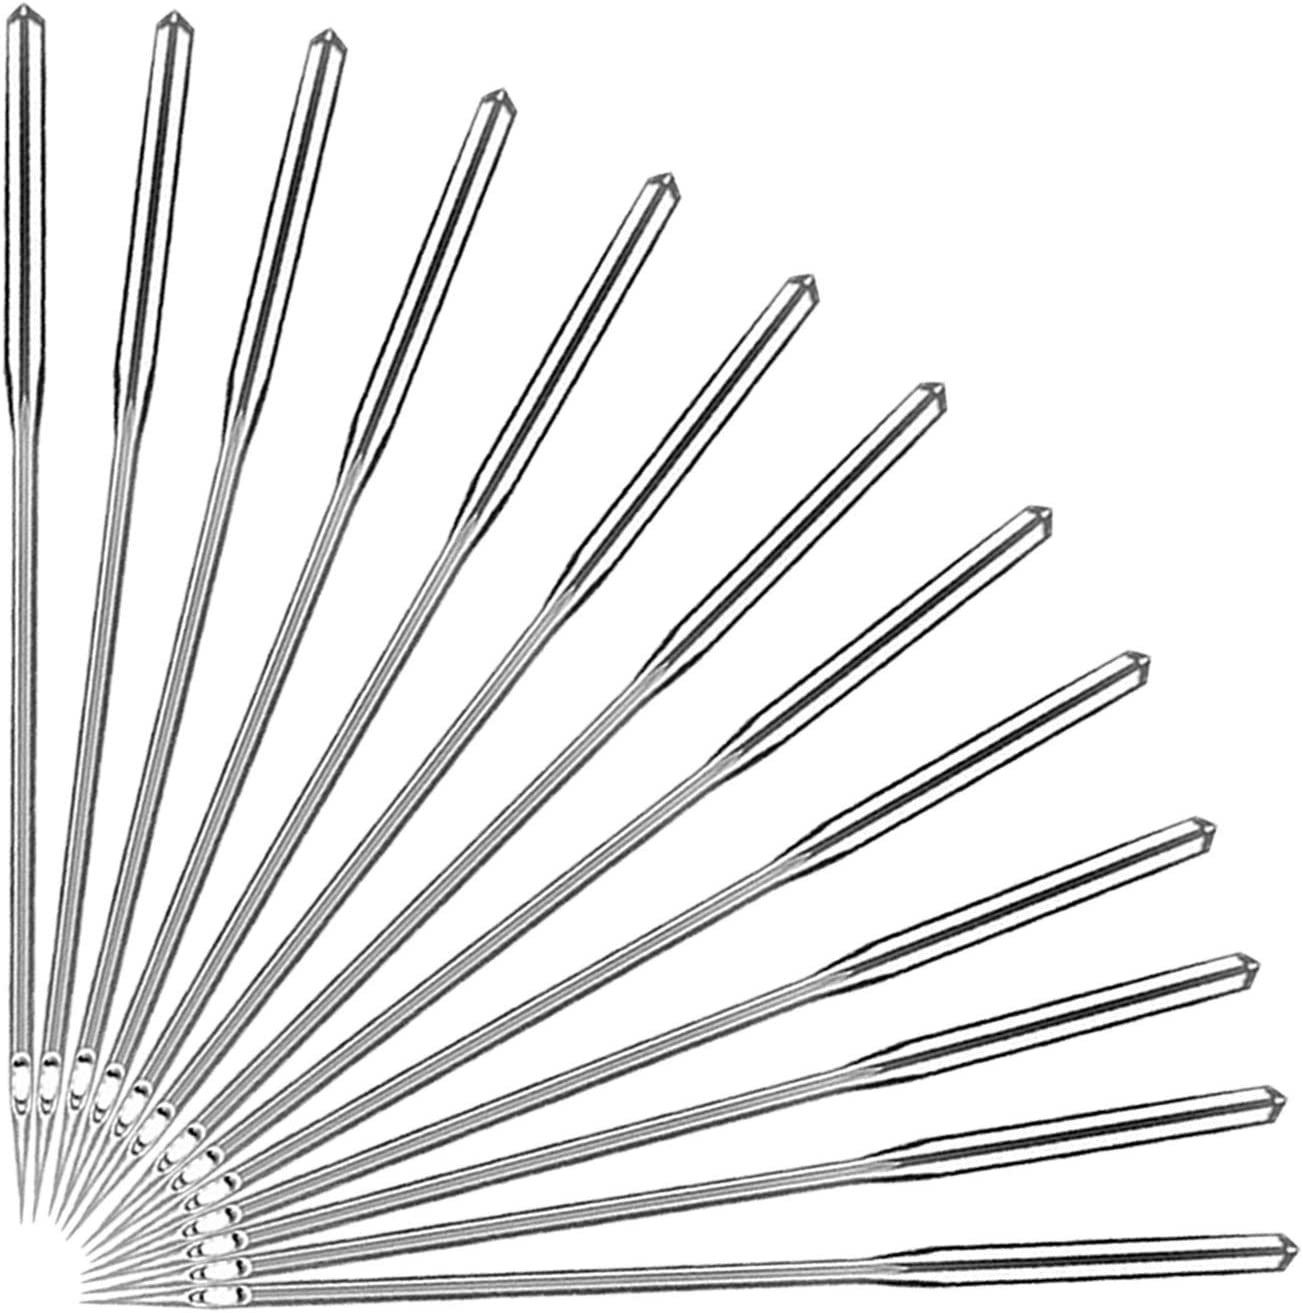 New product type 50 Count Sewing Machine Needles for Tampa Mall Universal Sew Point Ordinary